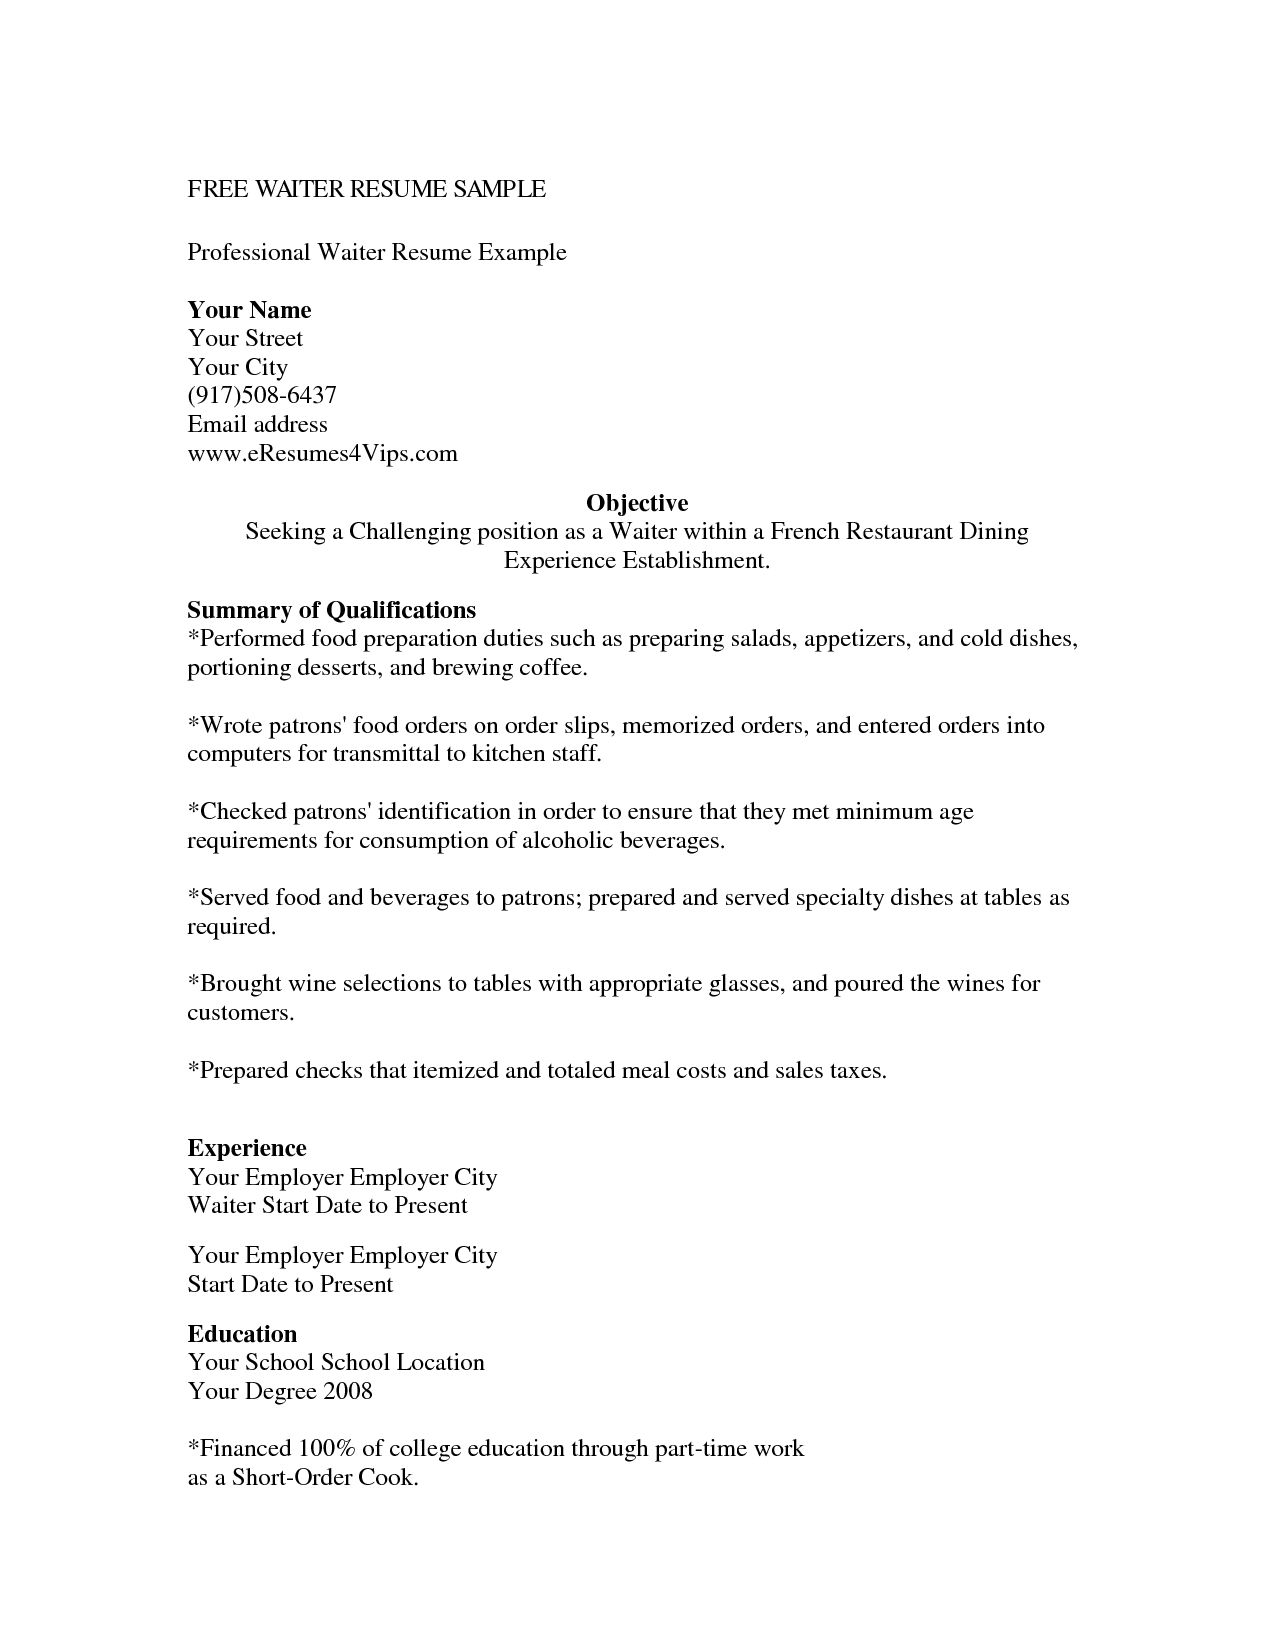 cover letter resume for waitress position example within